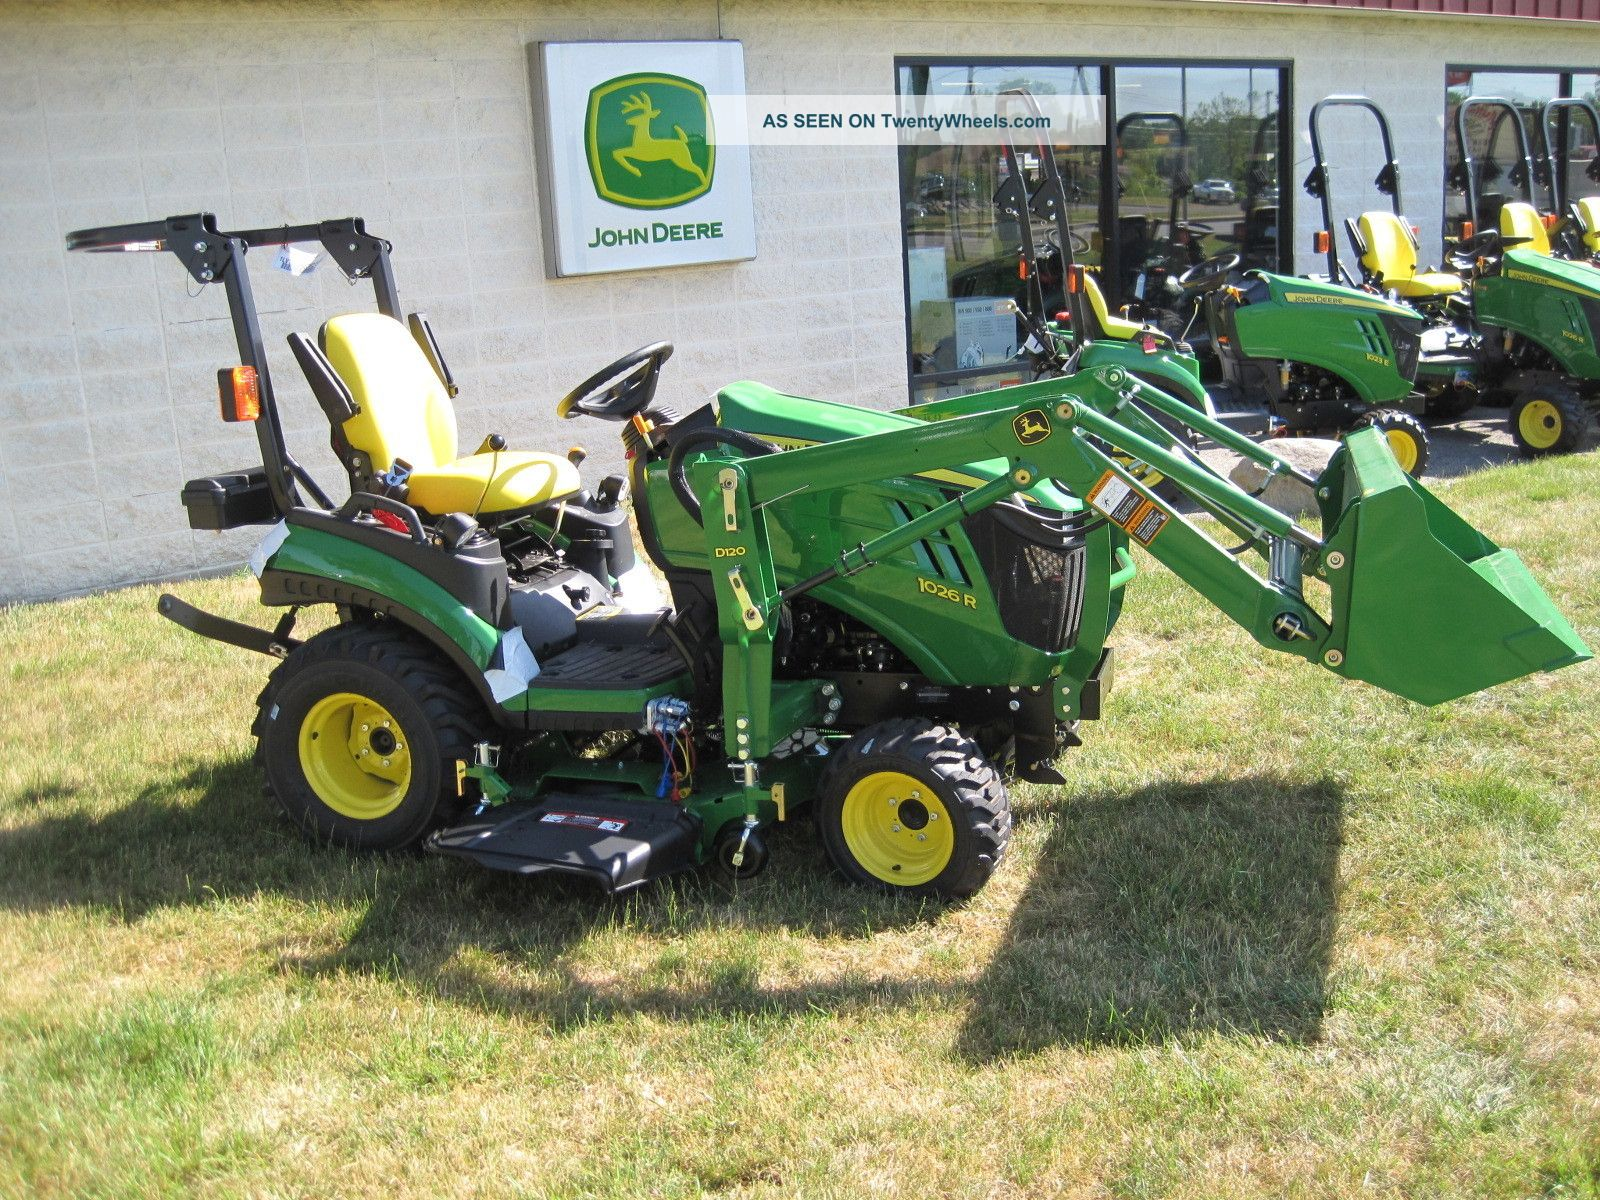 New John Deere 1 Series 1026r Sub - Compact Tractor With Front Loader And Mower Tractors photo